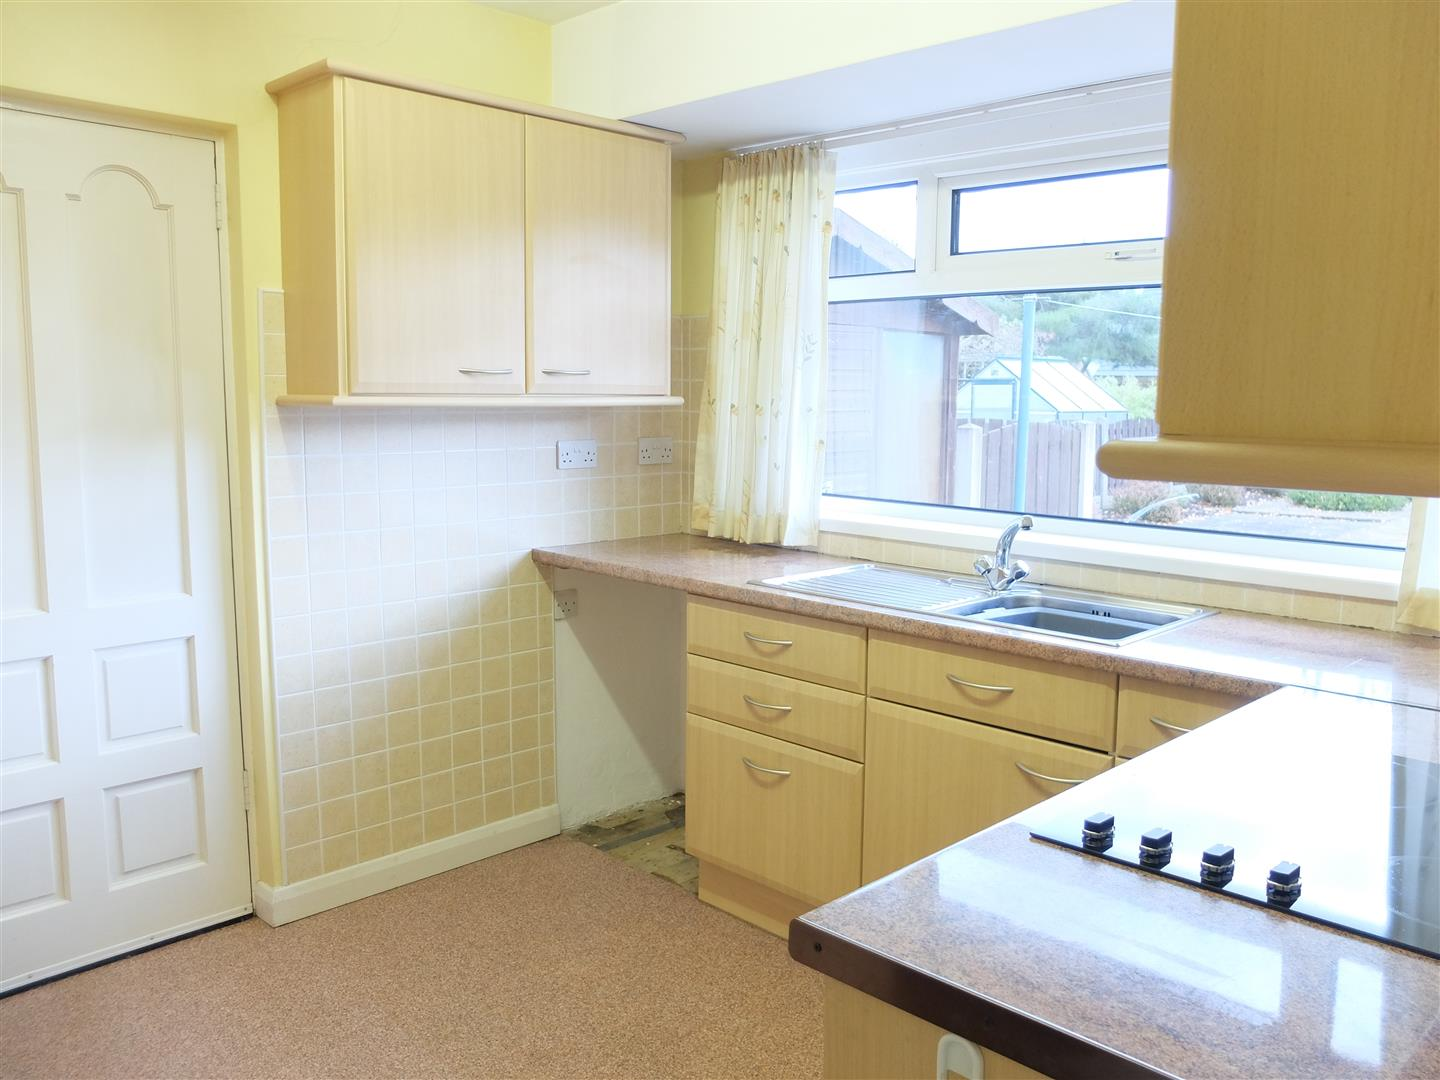 4 Farbrow Road Carlisle 2 Bedrooms Bungalow - Semi Detached For Sale